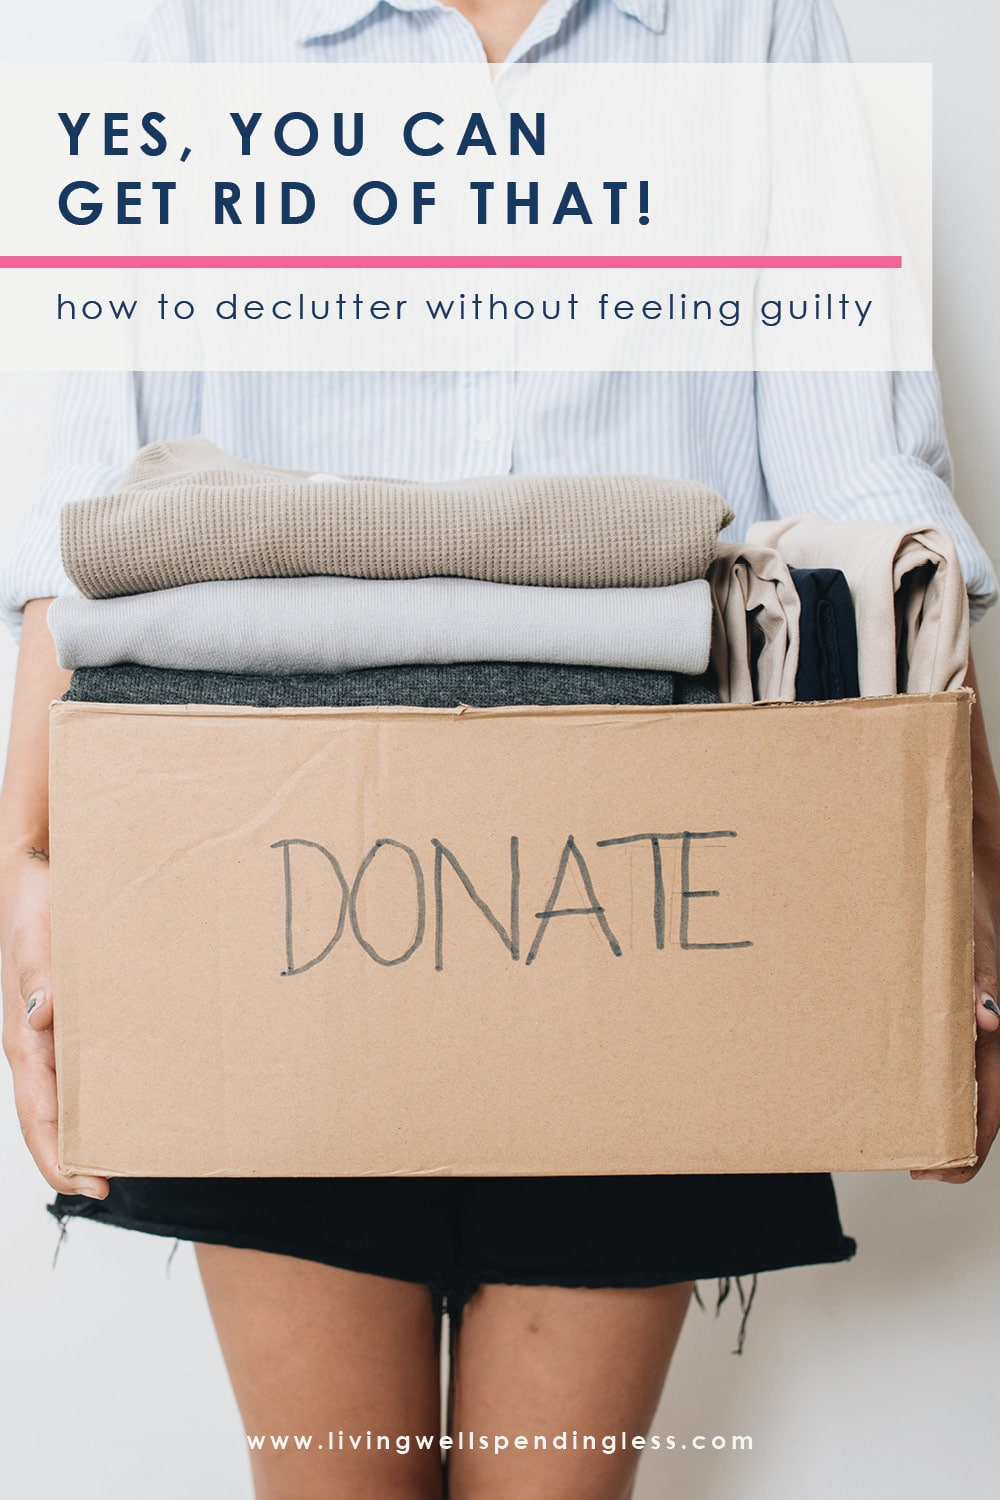 Ever struggle with feeling guilty about getting rid of stuff? You are not alone! Stuff guilt is one of the biggest obstacles to living clutter free. Don't miss these tips on how to get rid of stuff guilt, and clear the clutter for good! #decluttering #mariekondo #tidyingup #unstuffed #cleaning #declutter #hometips #cleaningtips